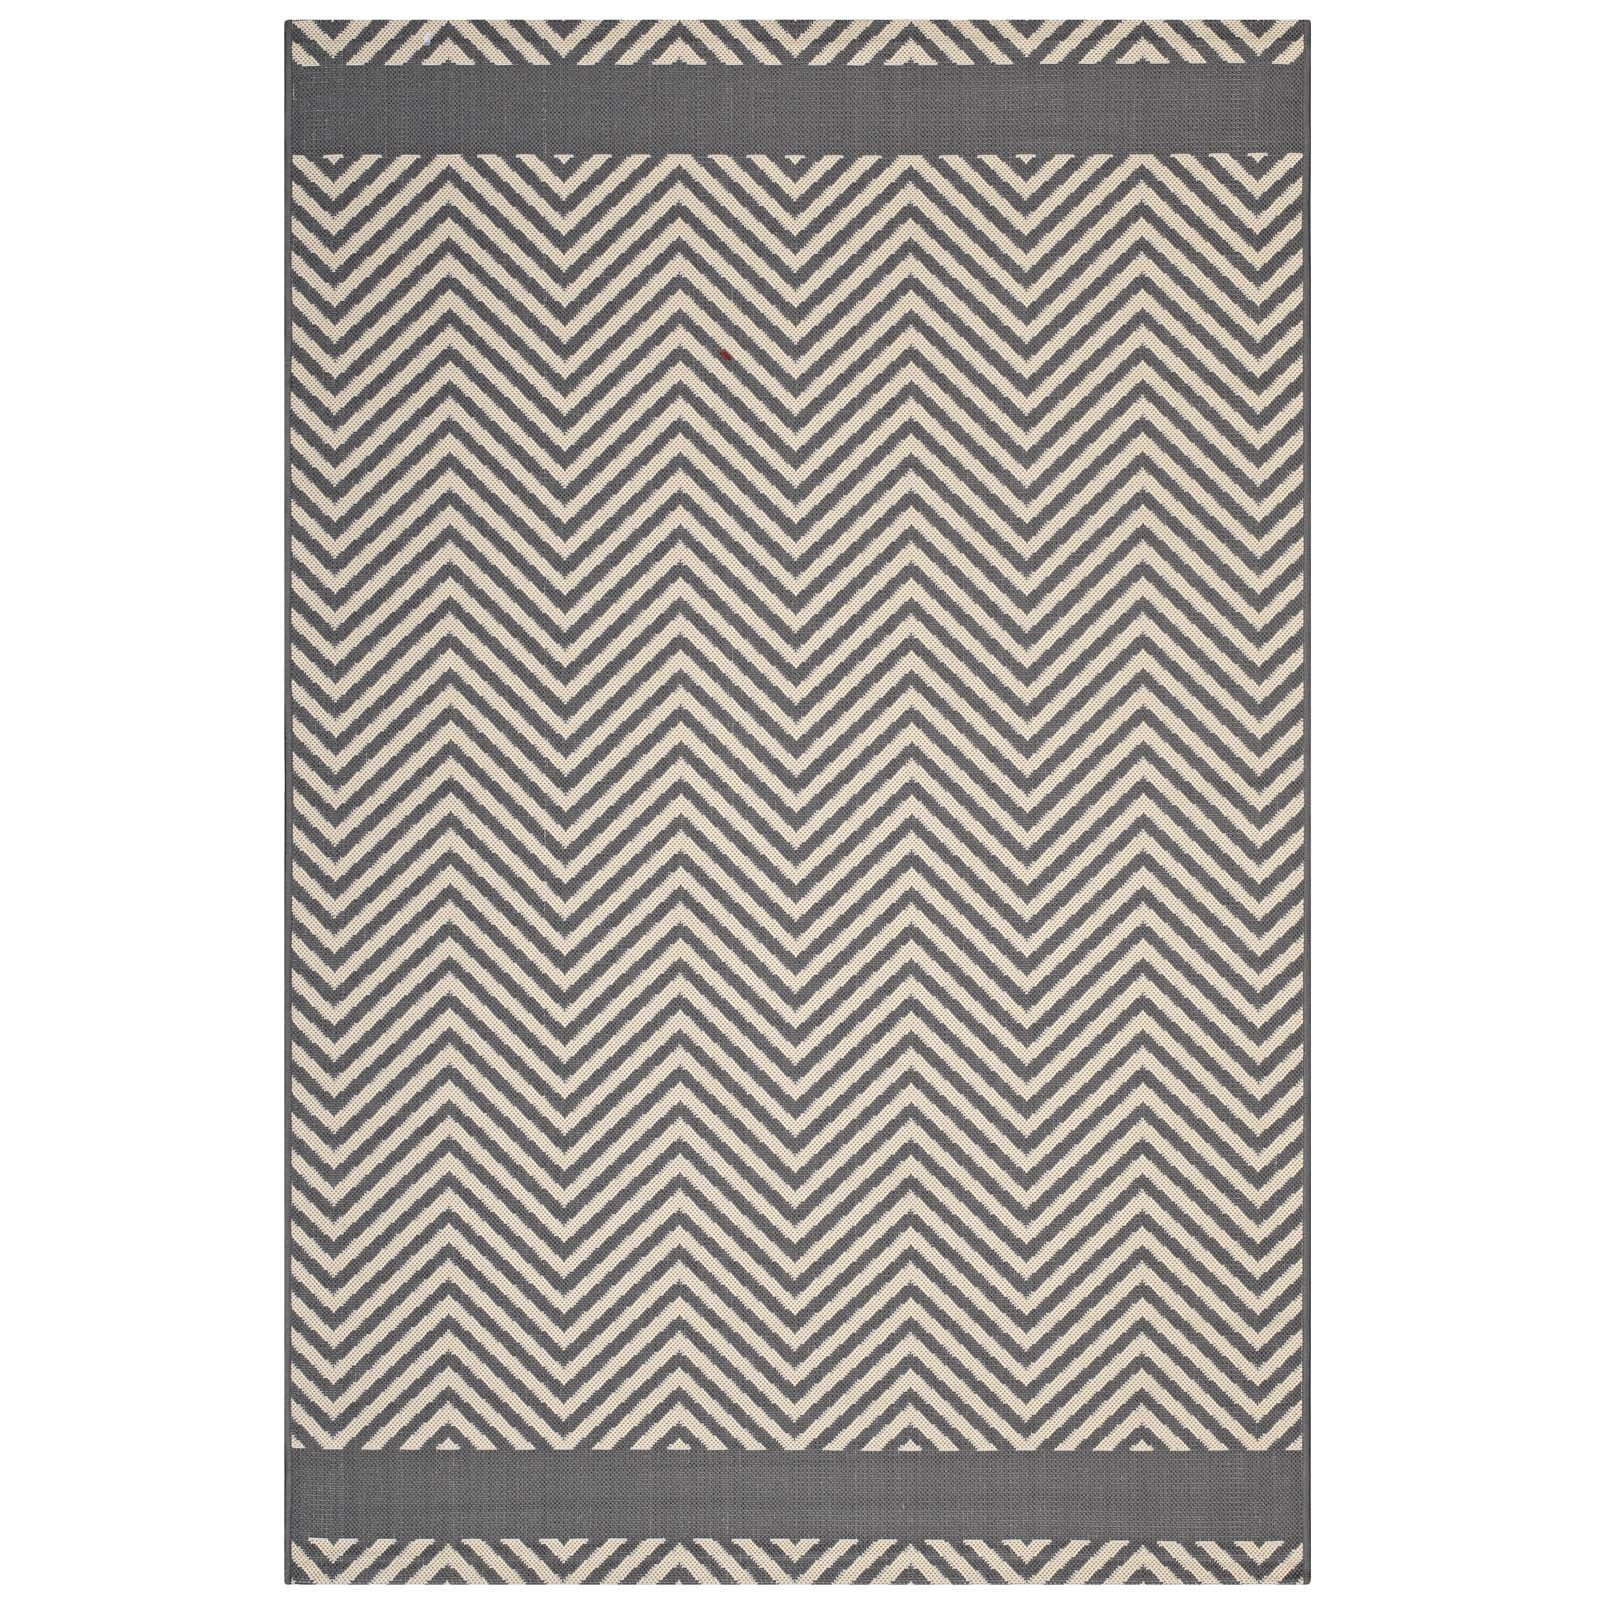 Modway R-1141B-58 Optica Chevron with End Borders Indoor and Outdoor Area Rug, Gray/Beige